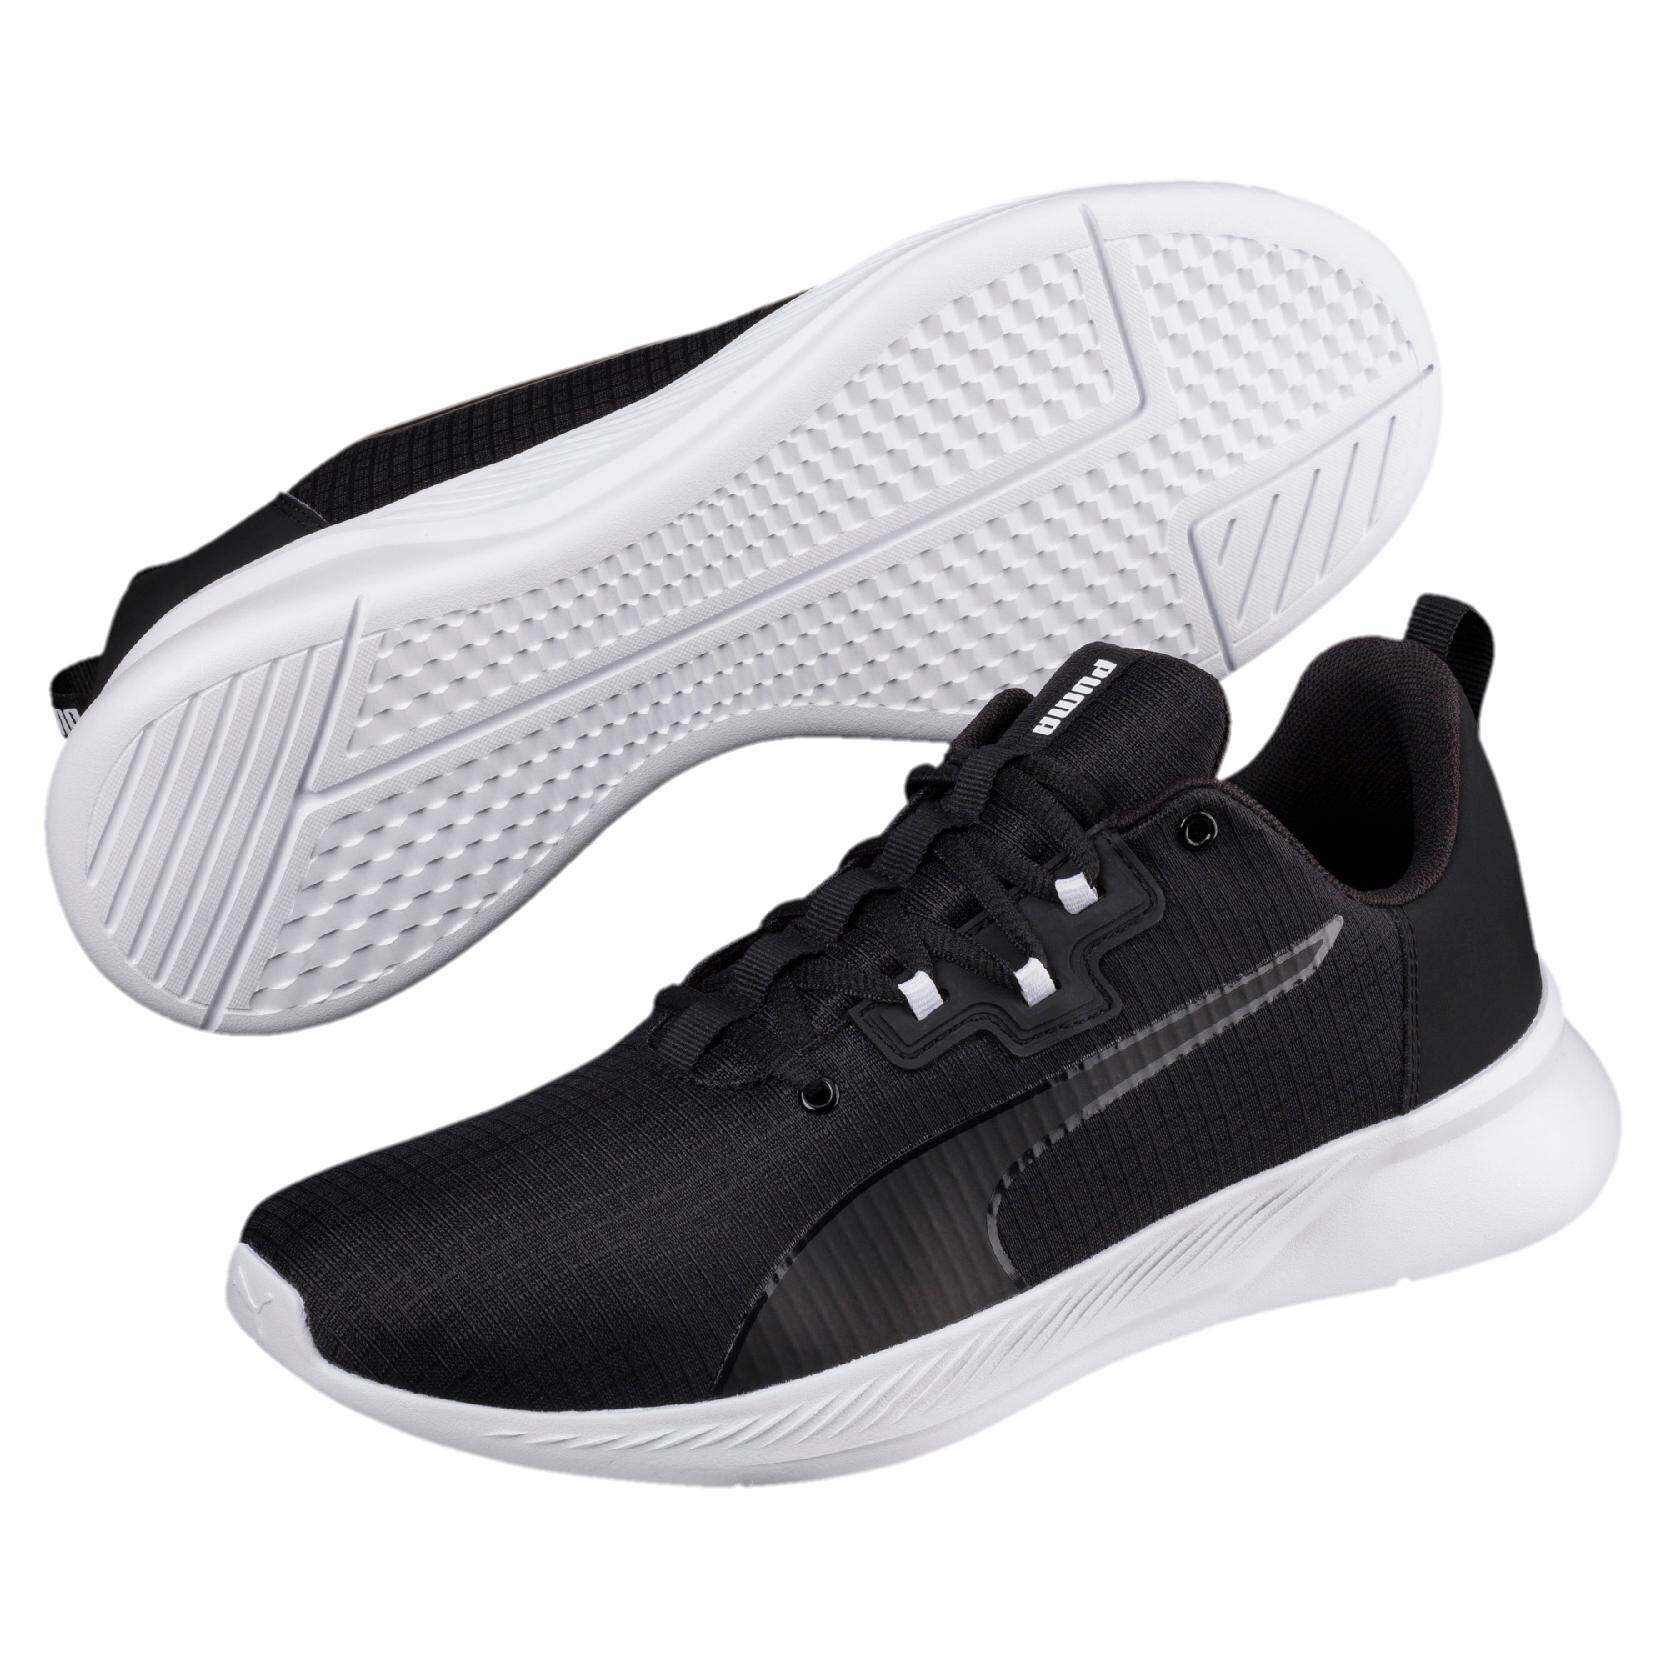 e6ab14178371 Puma Men s Sports Shoes - Running Shoes price in Malaysia - Best ...